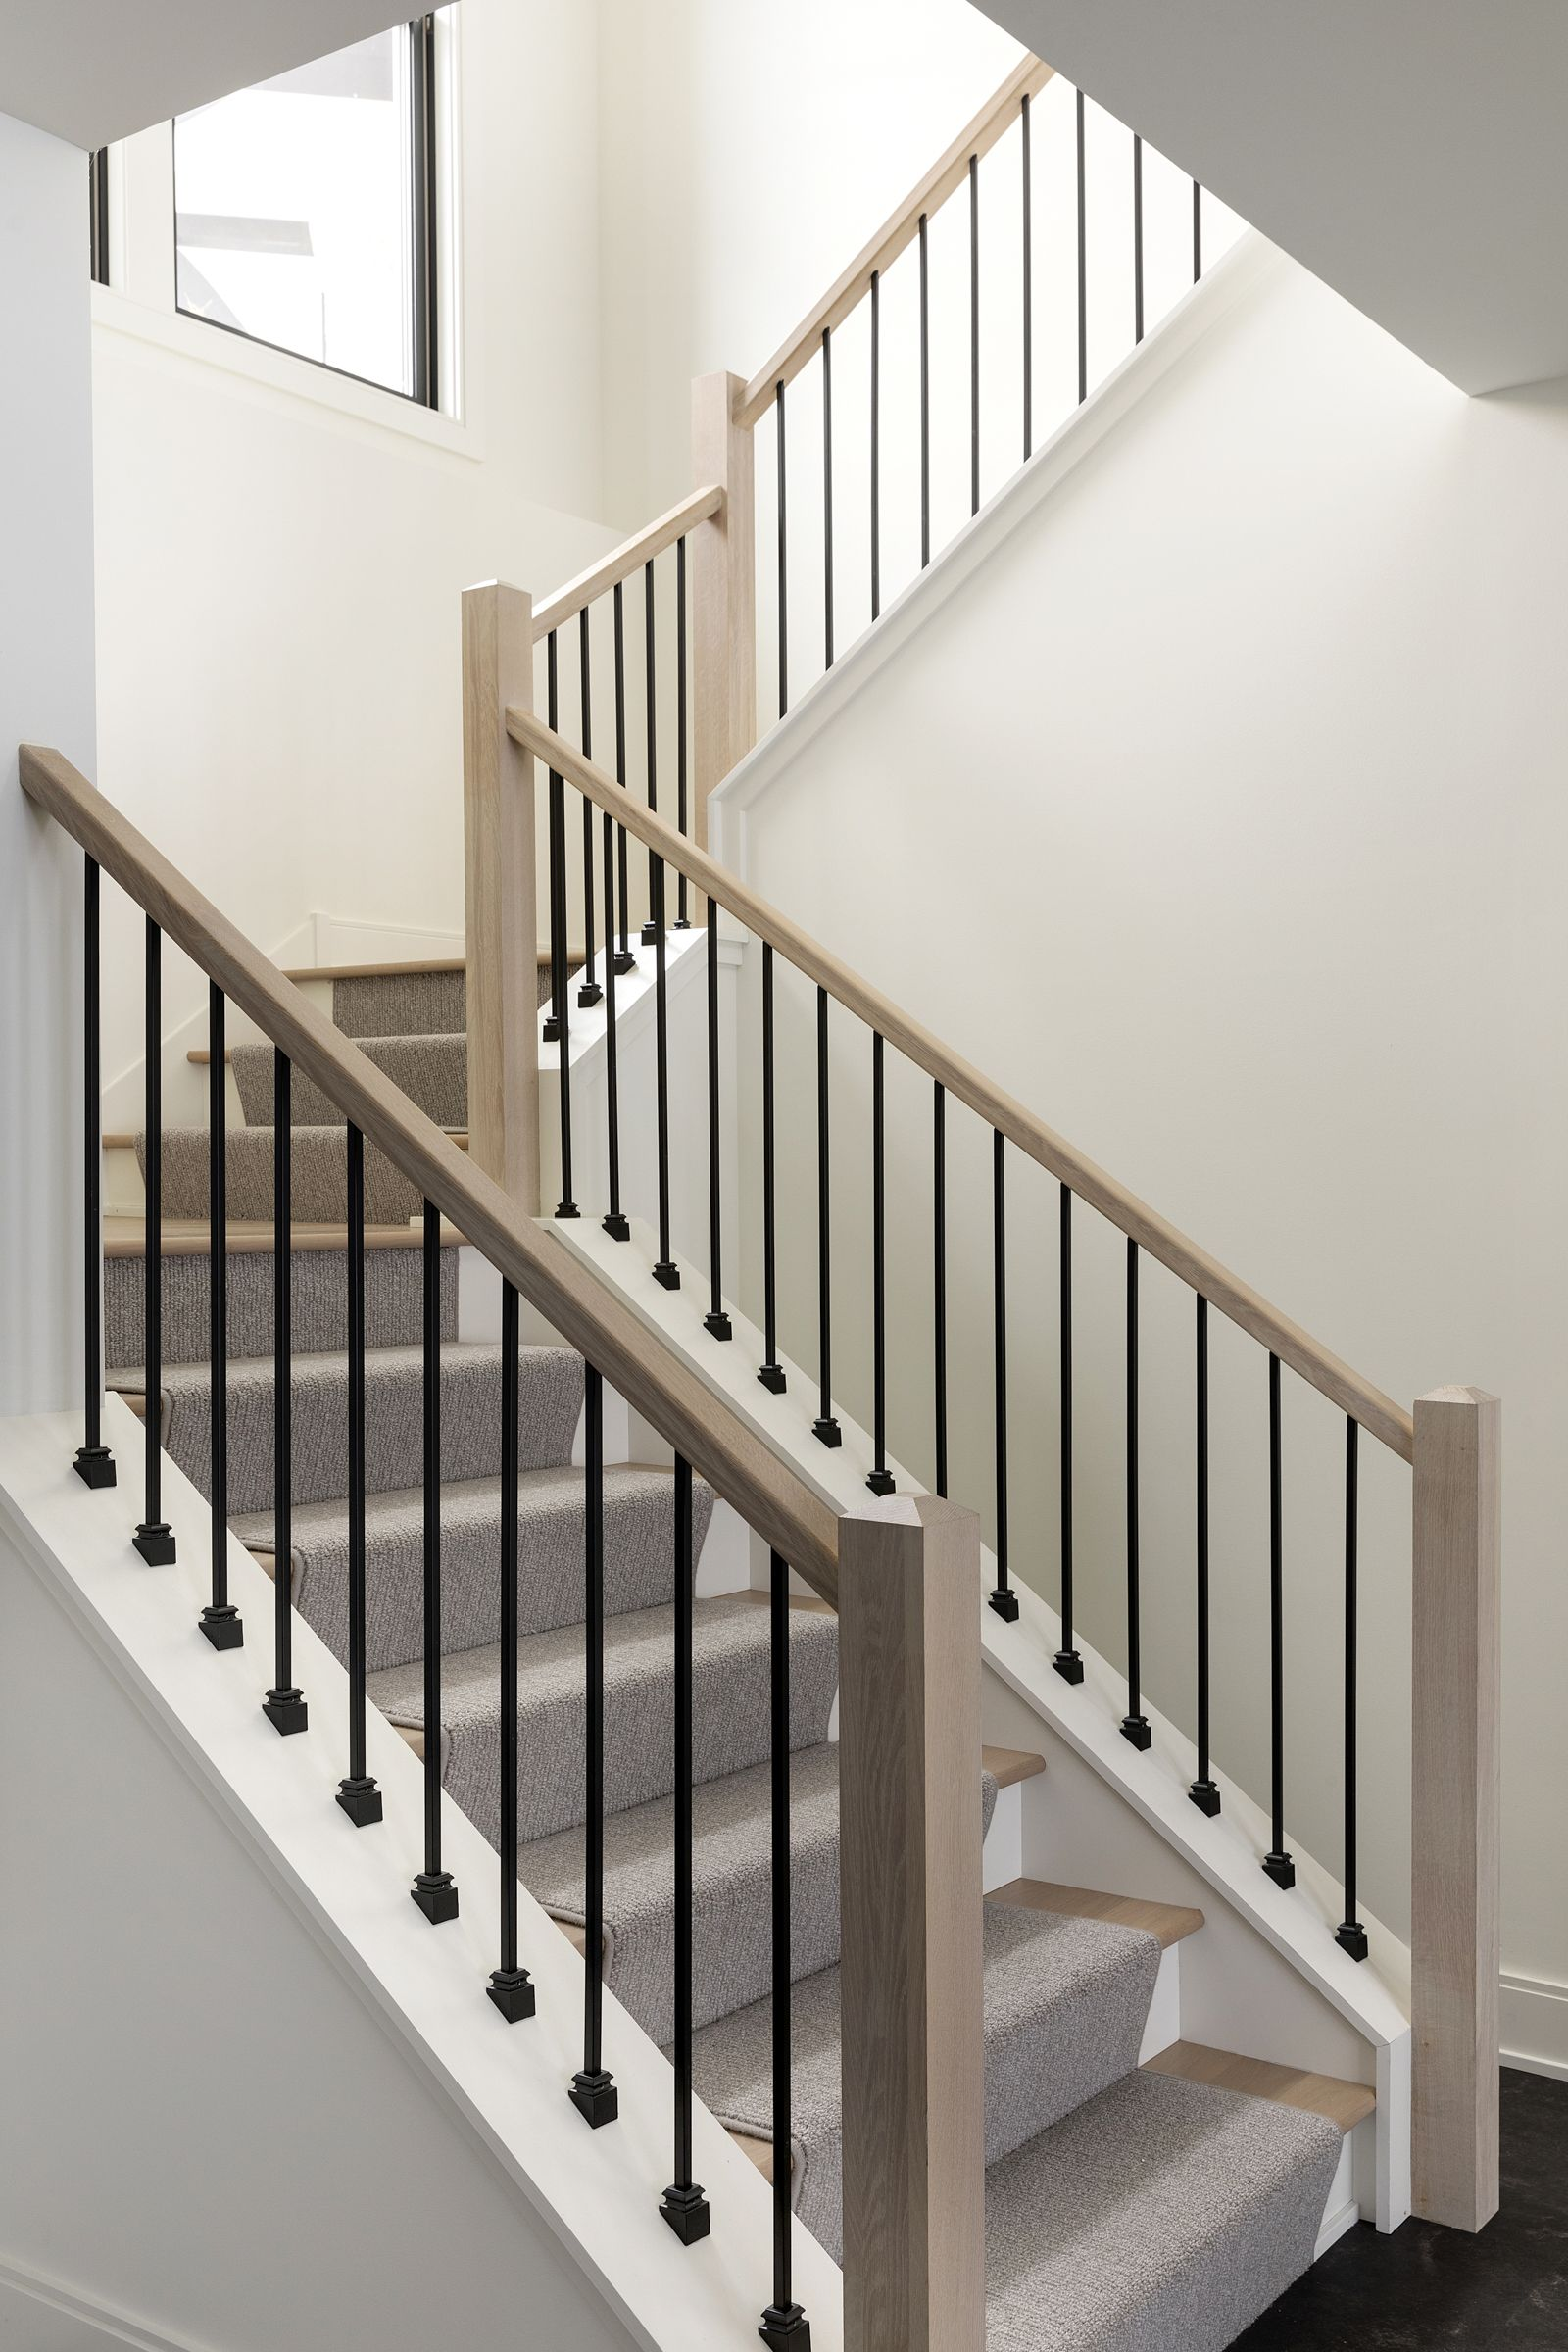 Best Modern Iron Railings For A Sleek Look In 2020 Wrought 400 x 300